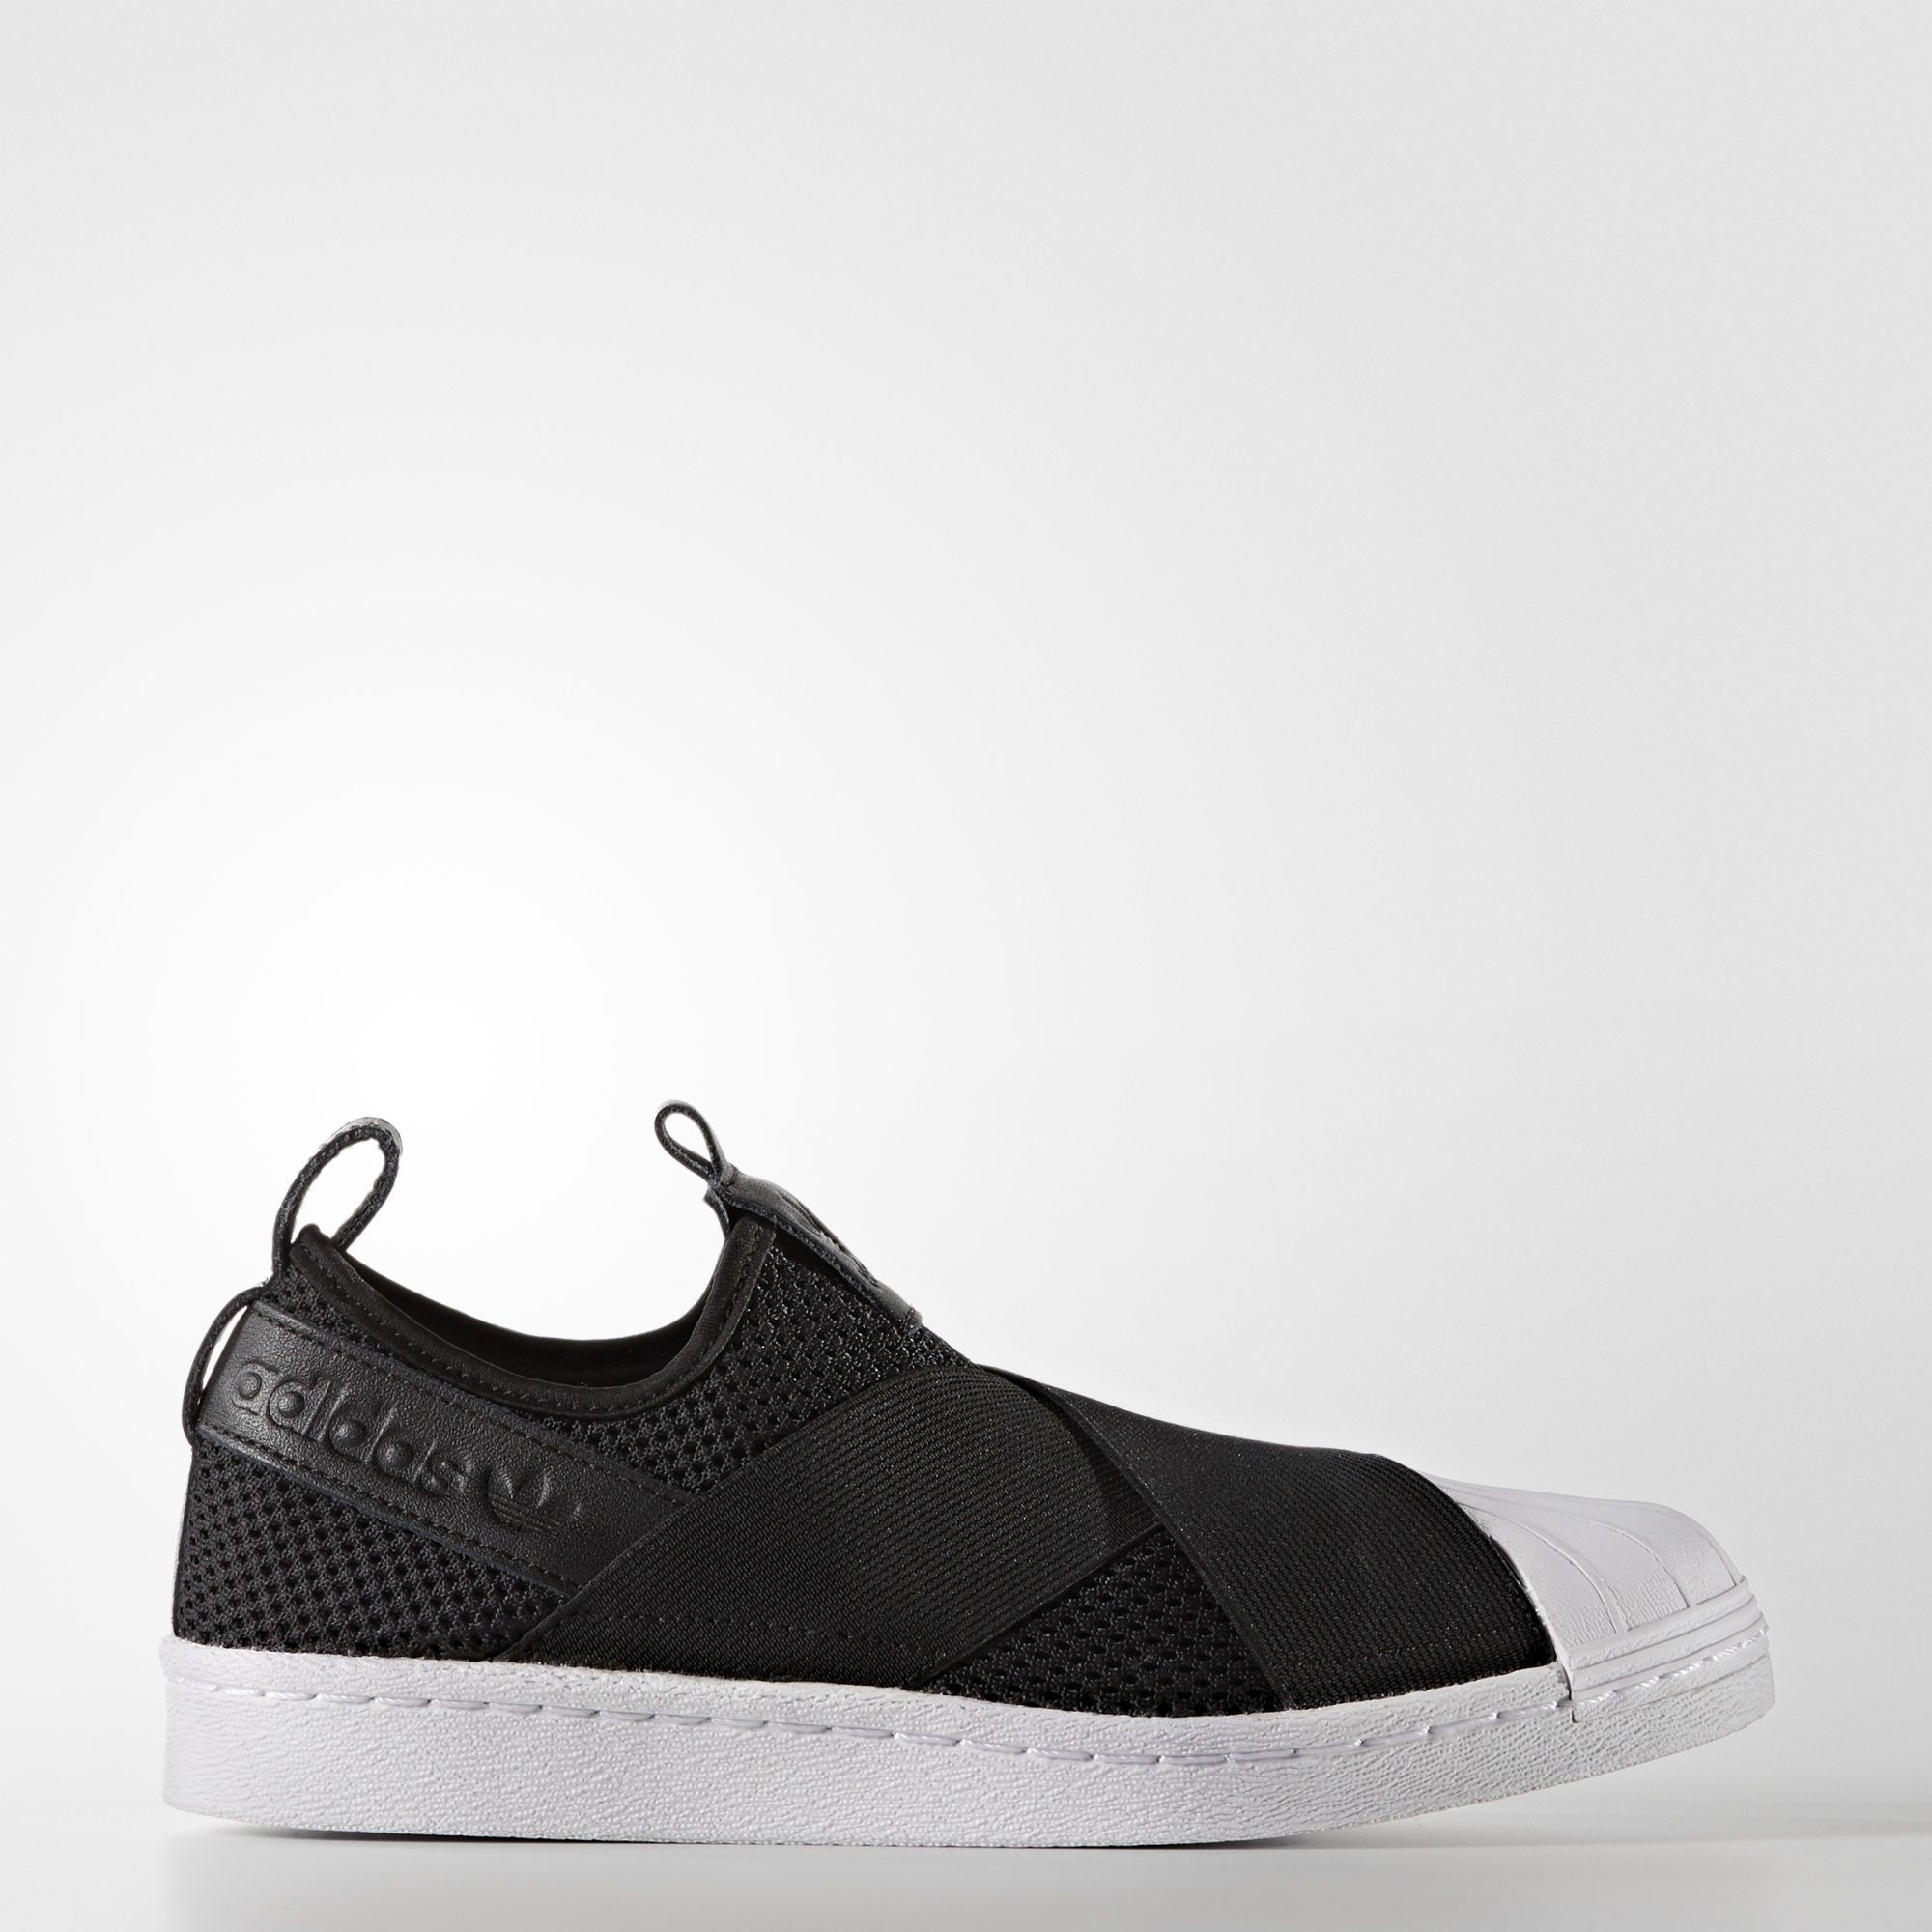 heiß Adidas Superstar Slip On W Schuhe 8,5 core black: zu